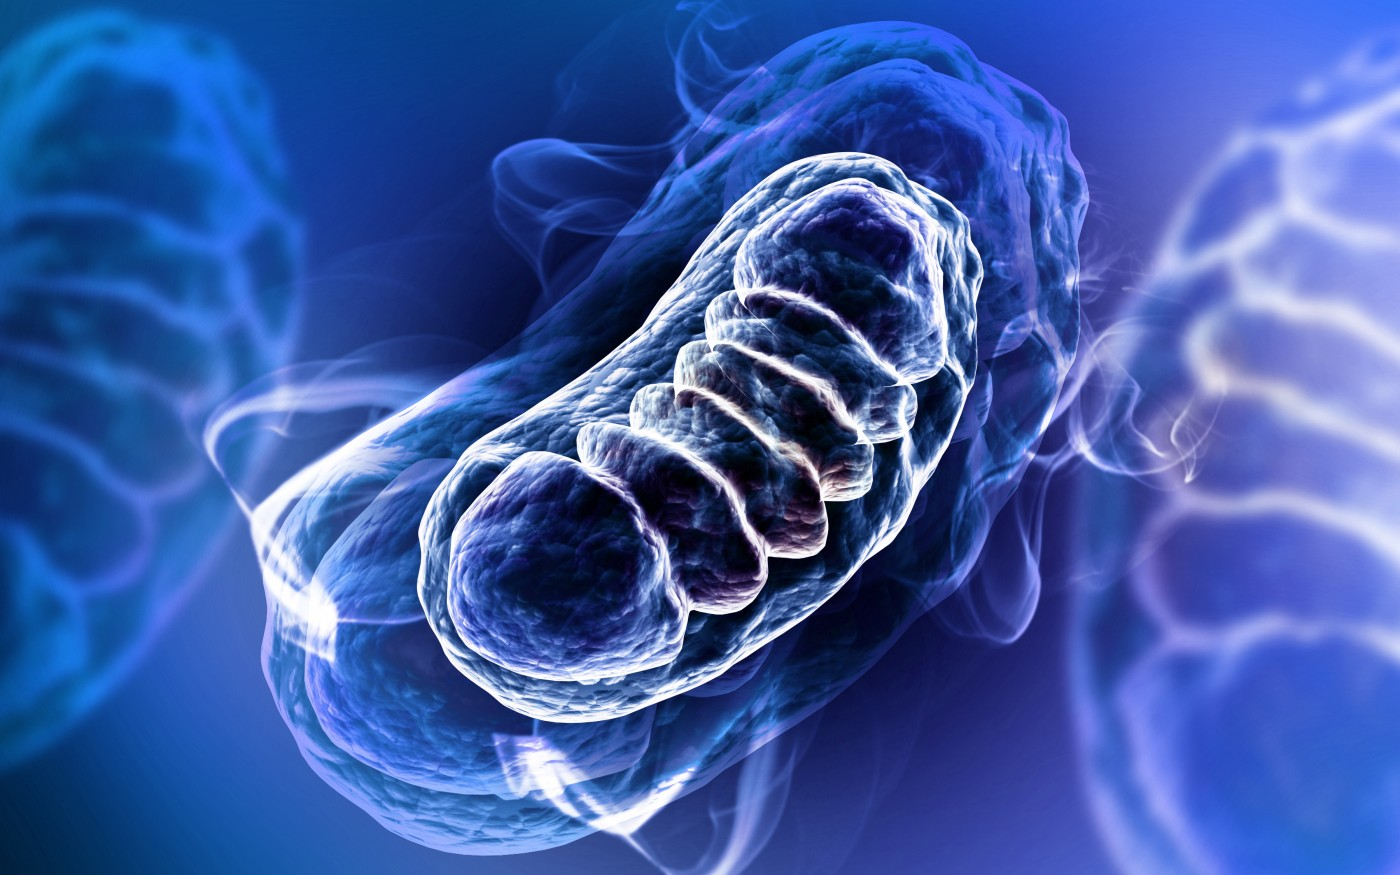 SPG7 Protein Found to Regulate Mitochondria-Induced Cell Death